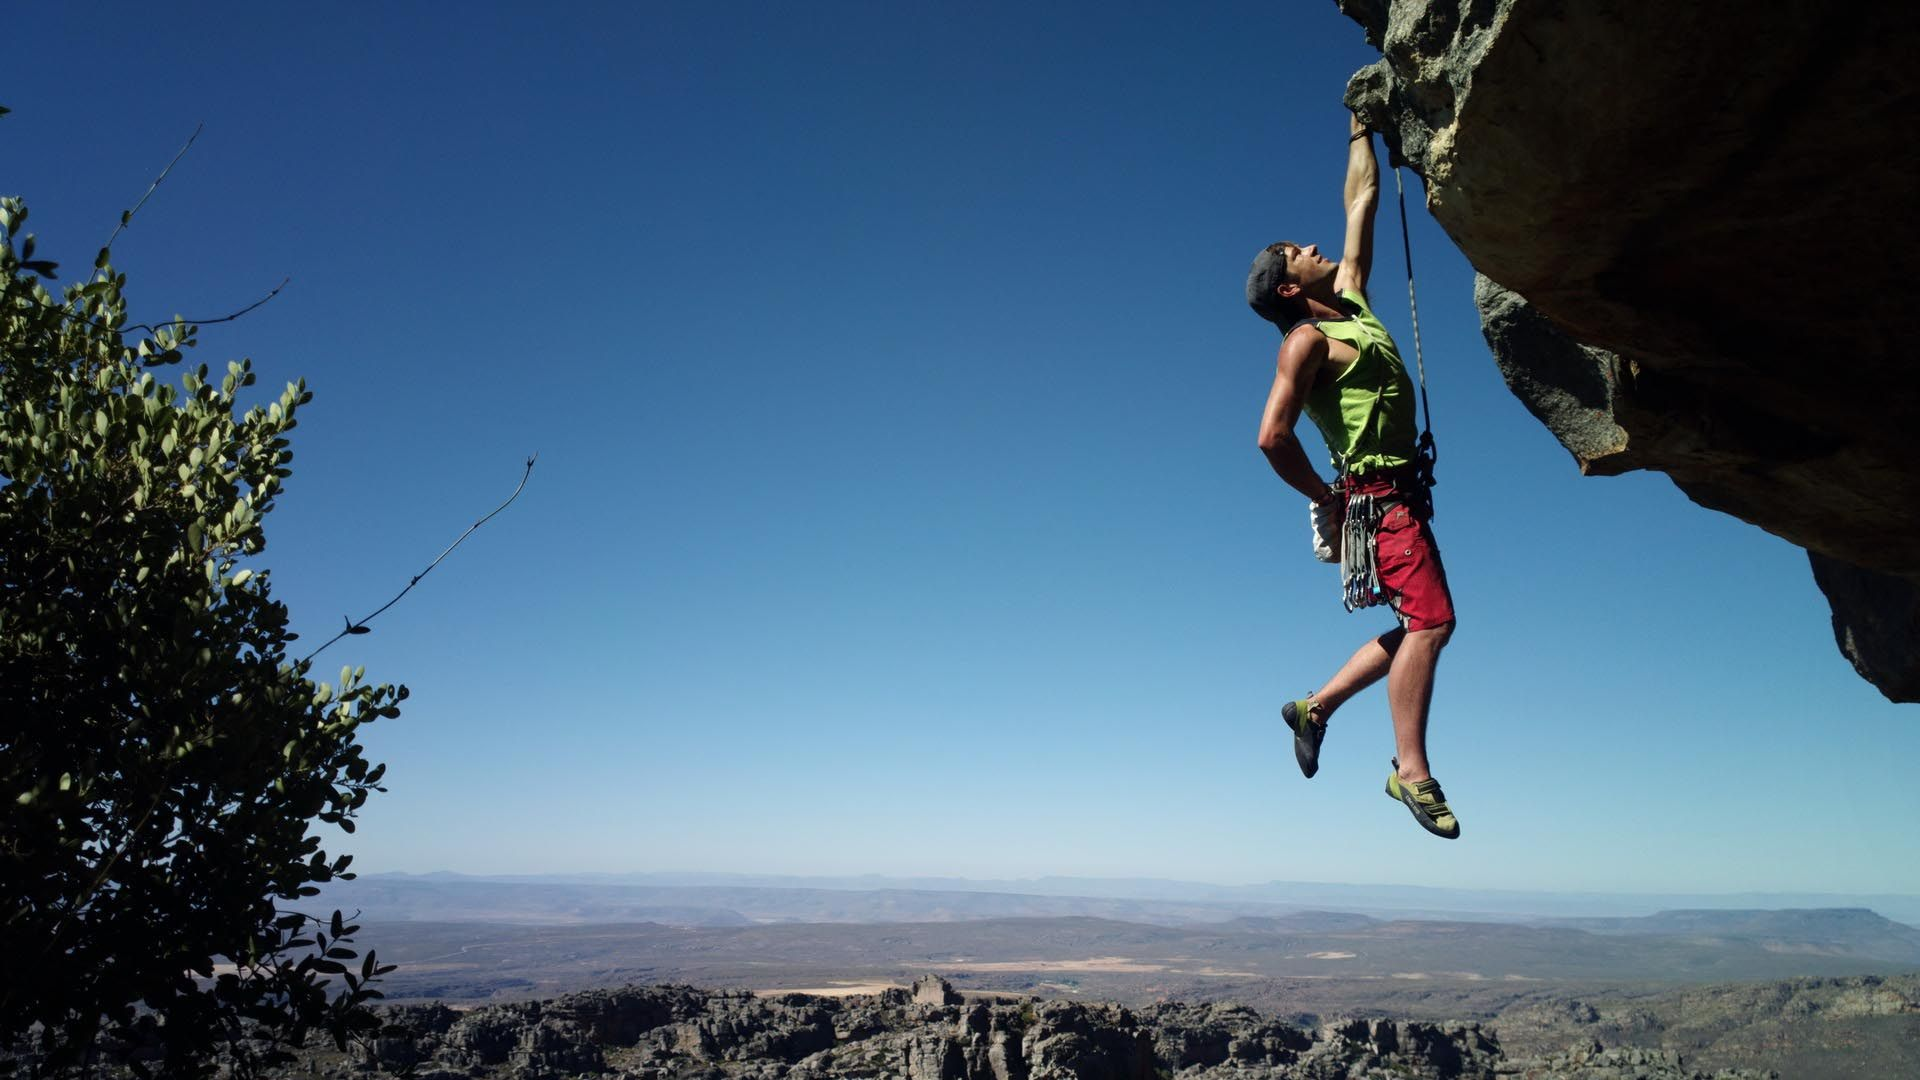 Mountain Climbing Google Search Extreme Sports Sports Wallpapers Adventure Sports